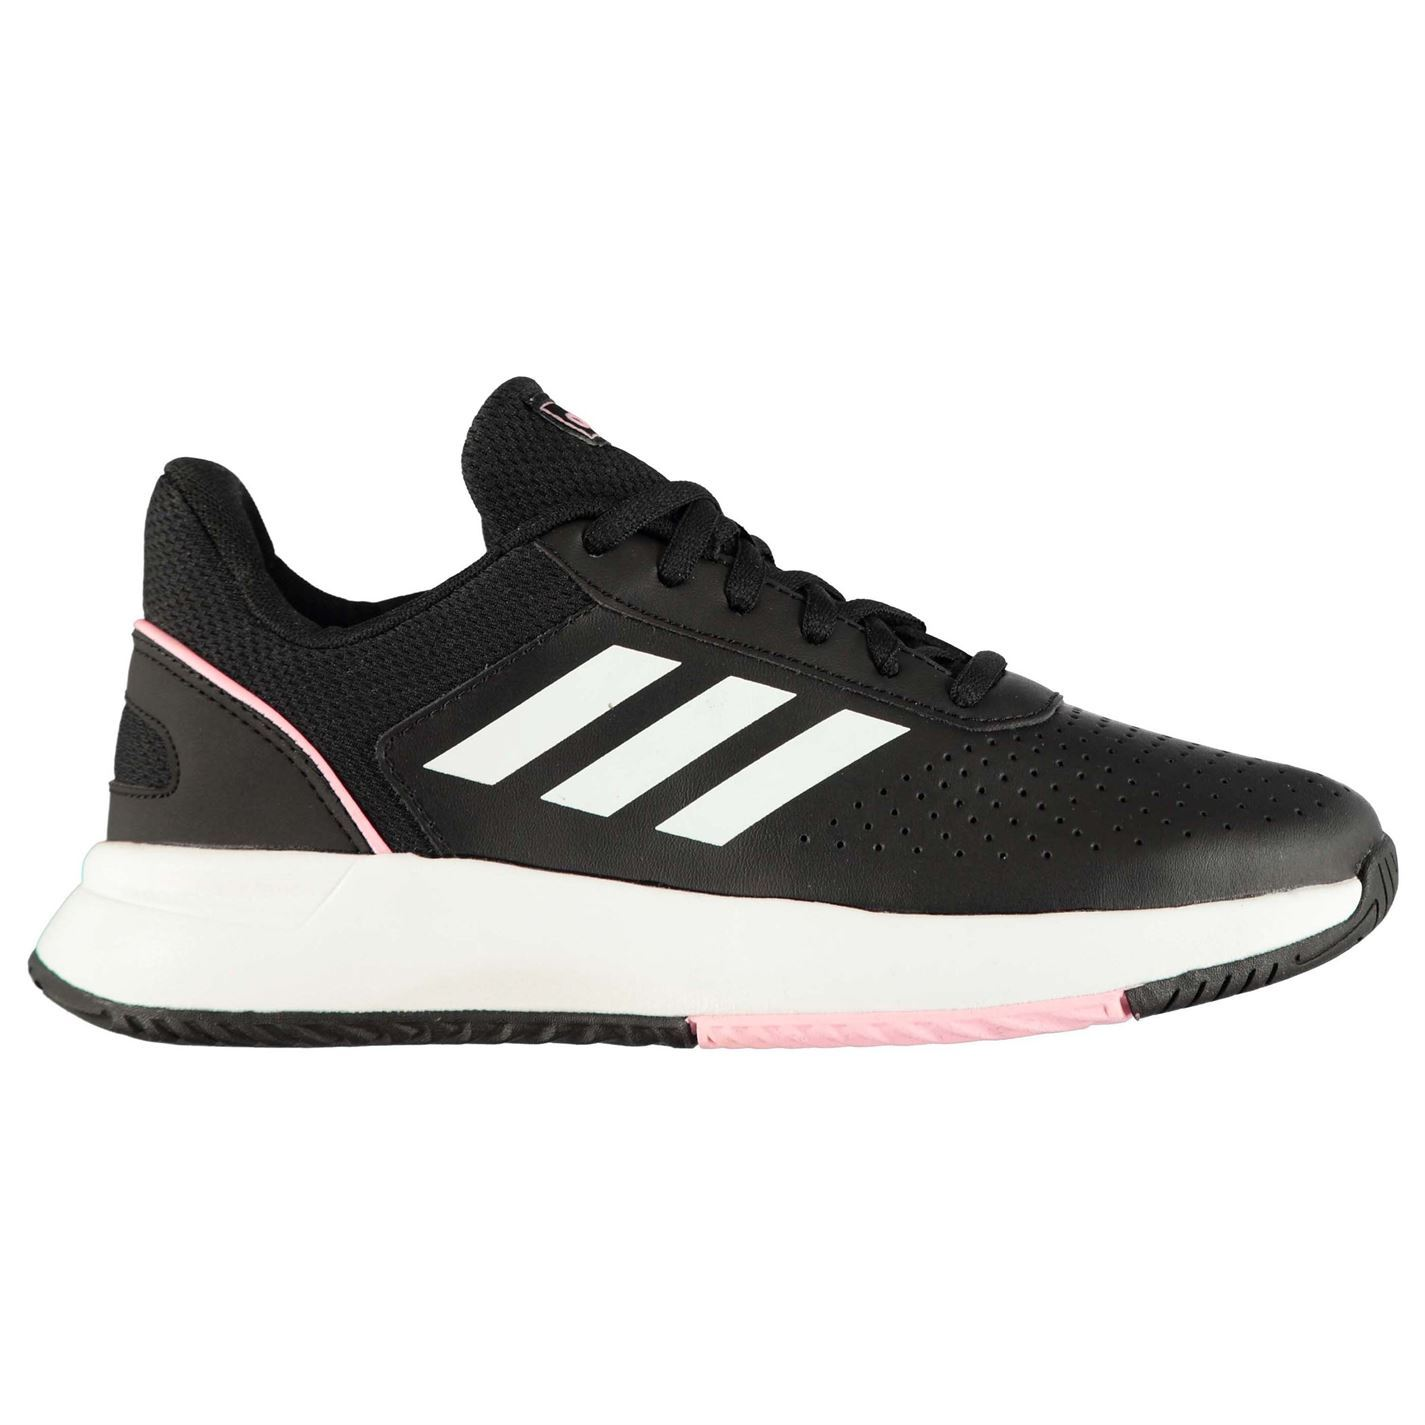 Details about adidas Courtsmash Tennis Shoes Womens BlackWhite Trainers Sneakers Footwear